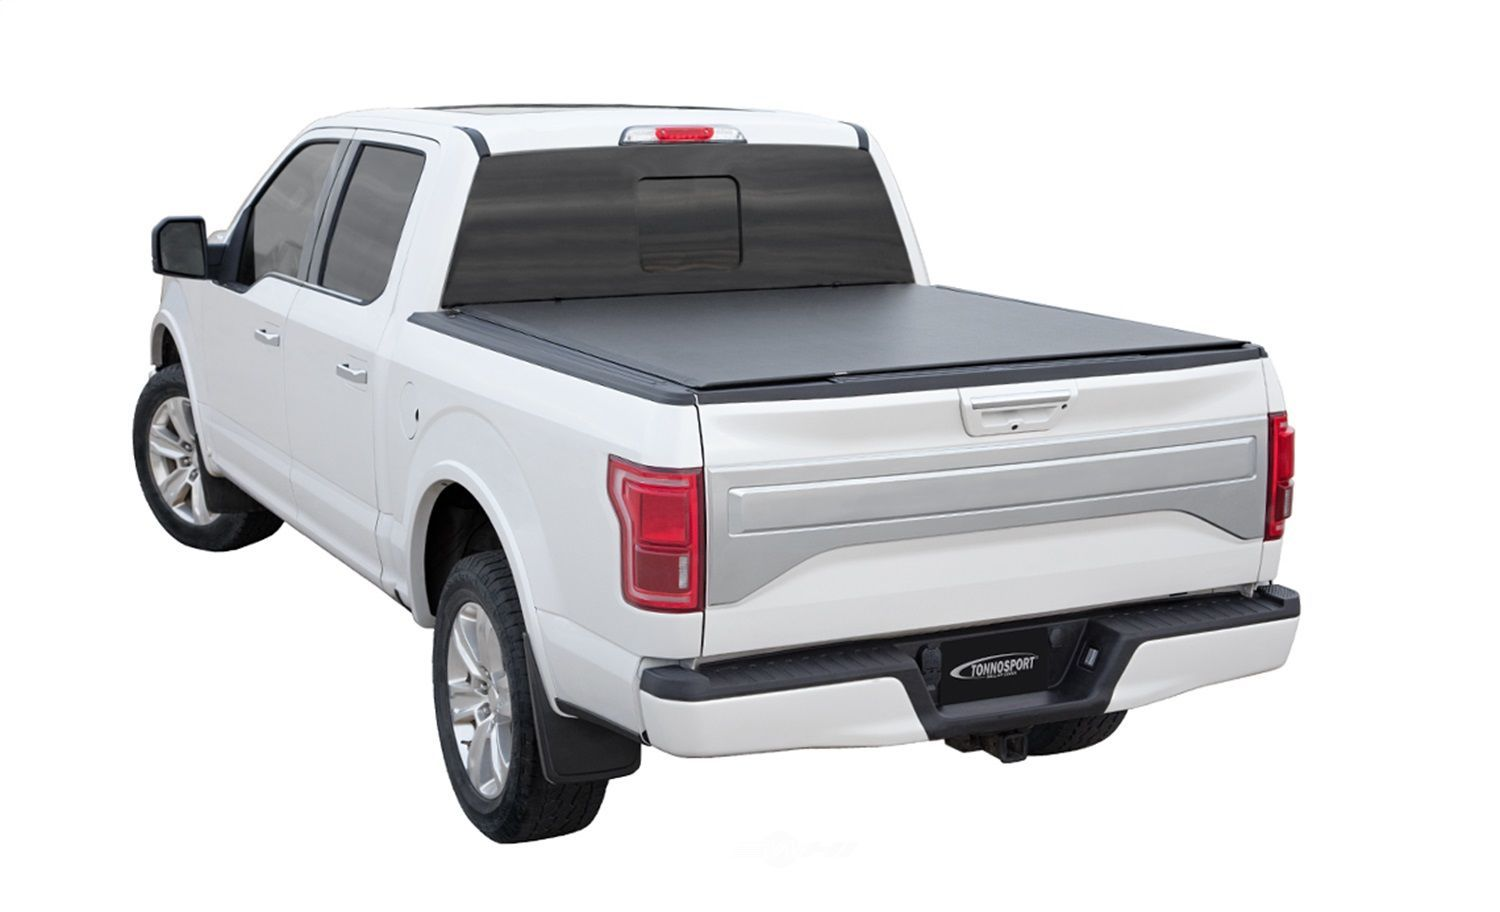 ACCESS COVER - Tonnosport Roll-up Cover - XBP 22010109